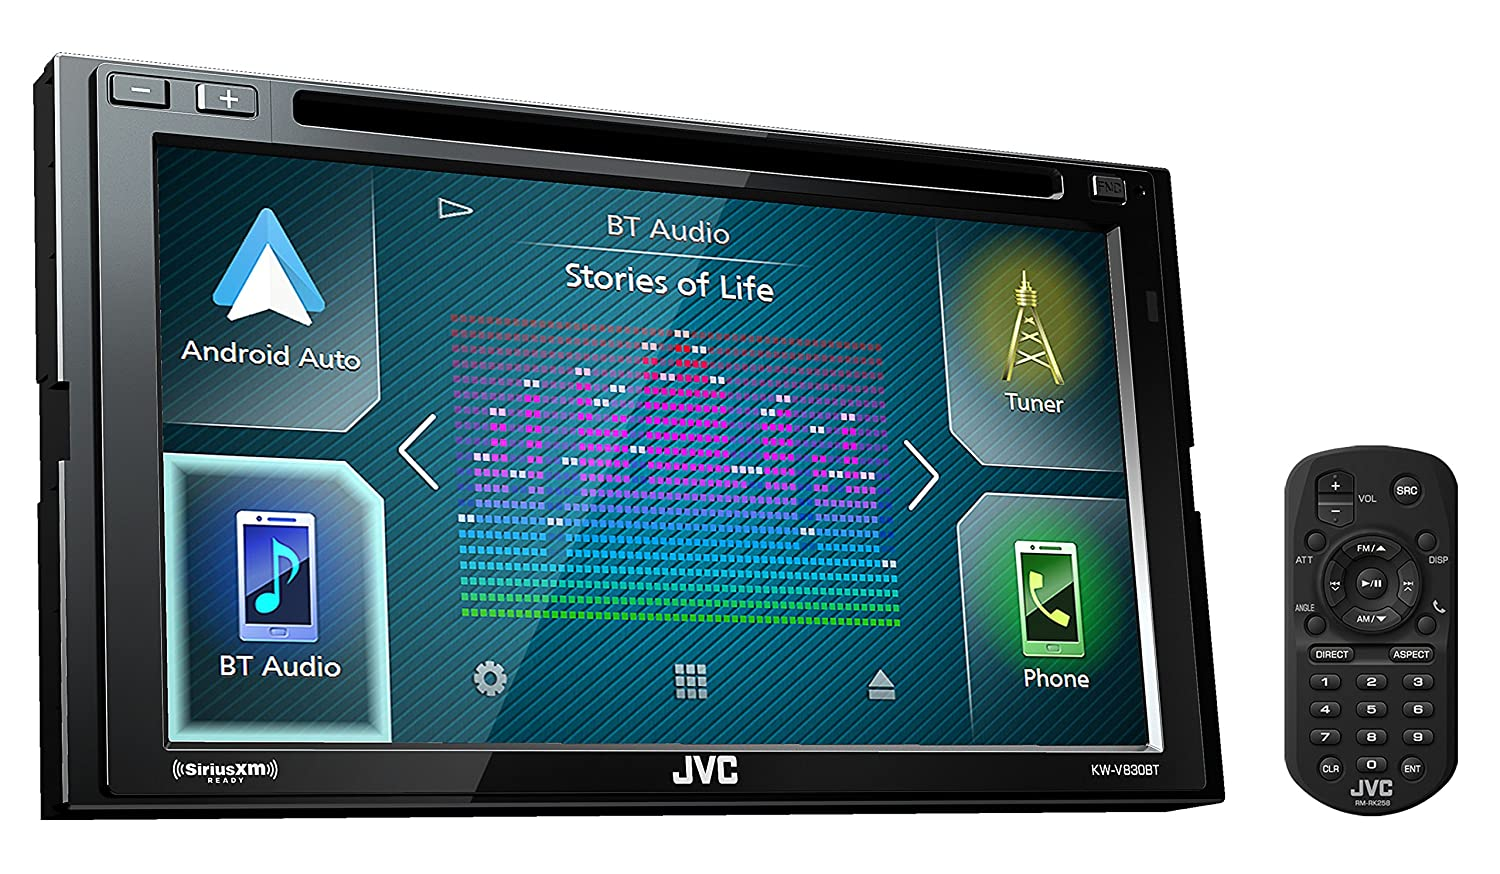 Amazon.com: JVC KW-V830BT Double DIN Bluetooth in-Dash DVD/CD/AM/FM ...